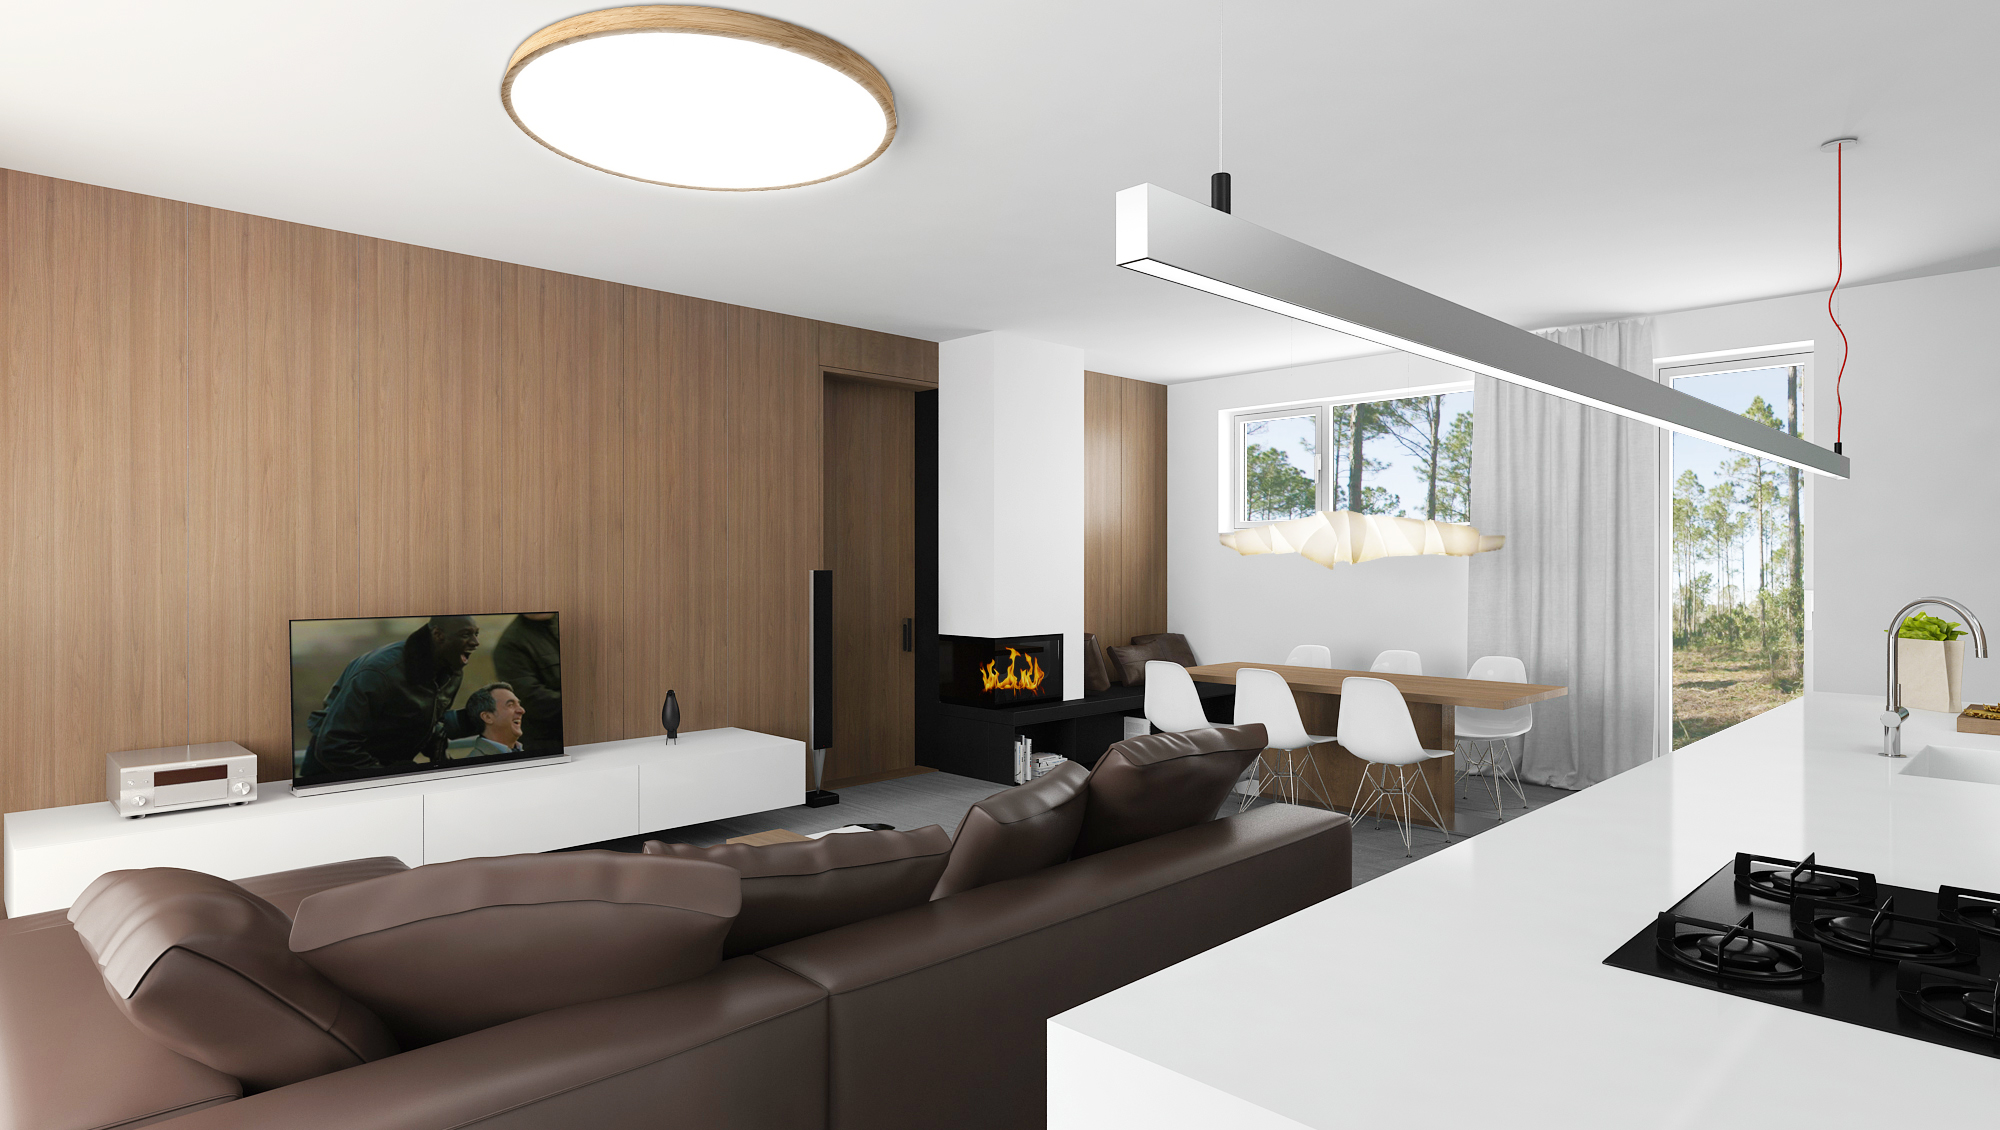 Surface mounted ceiling light with built-in LED module made from oak wood